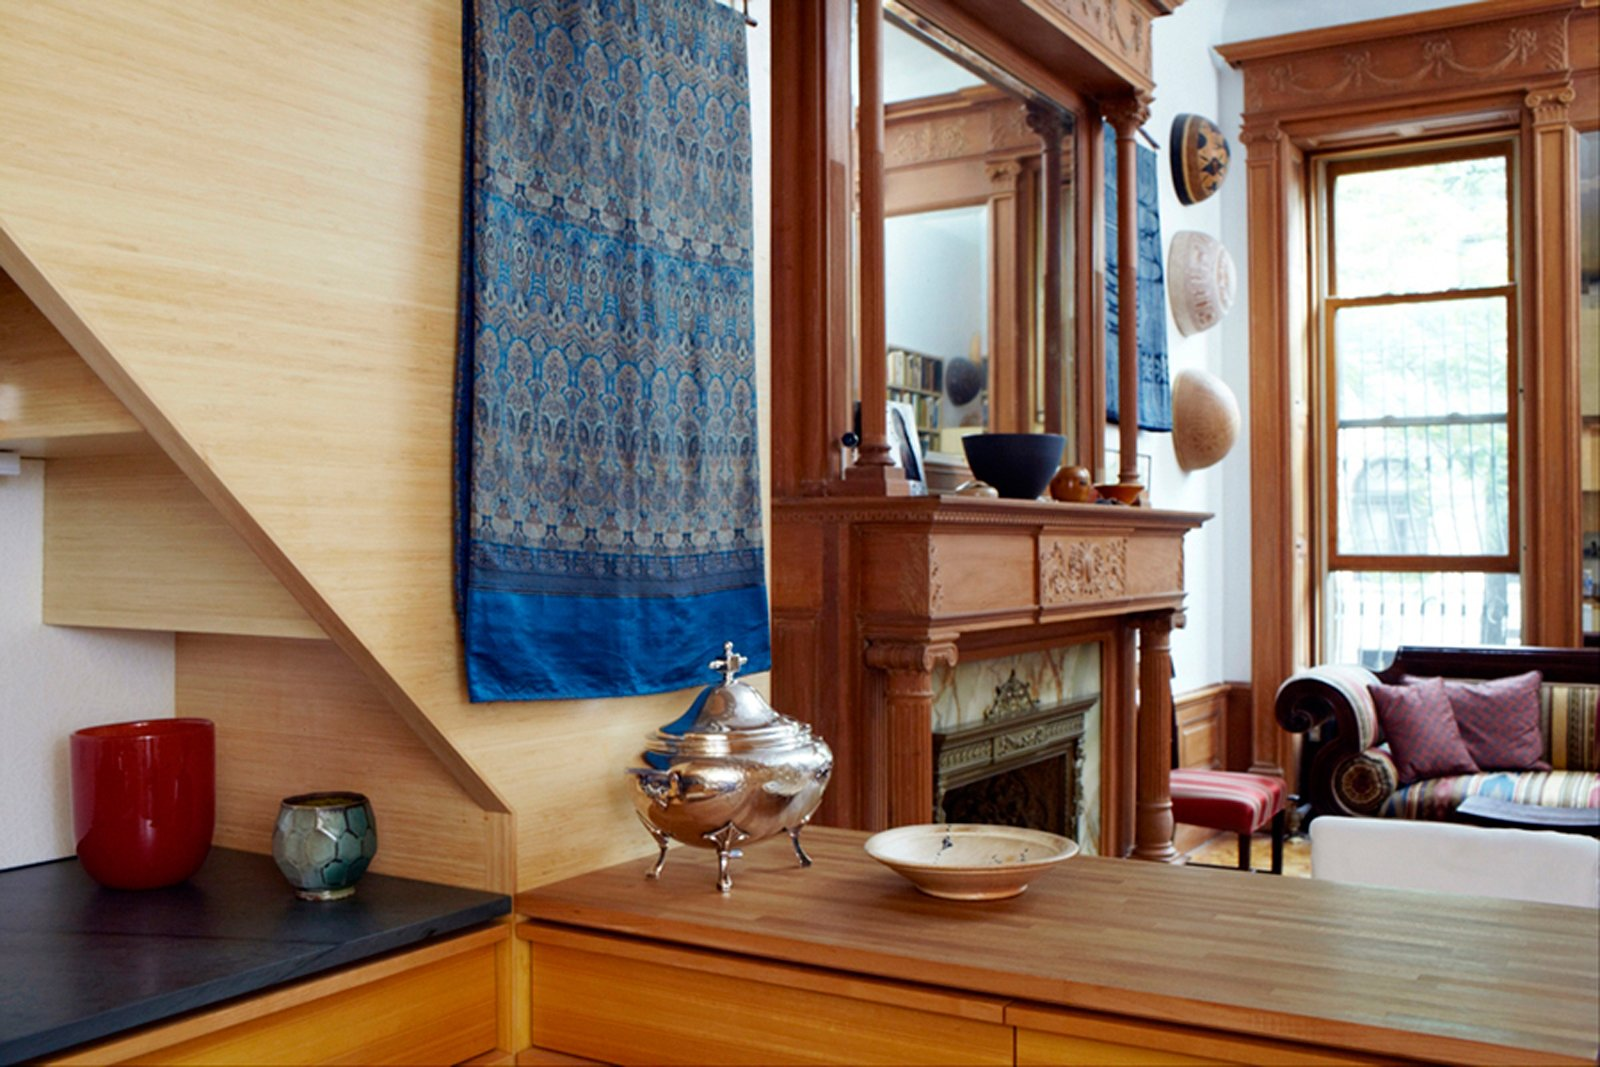 Photo 5 of 8 in Space-Saving Wood-Paneled Apartment in Manhattan